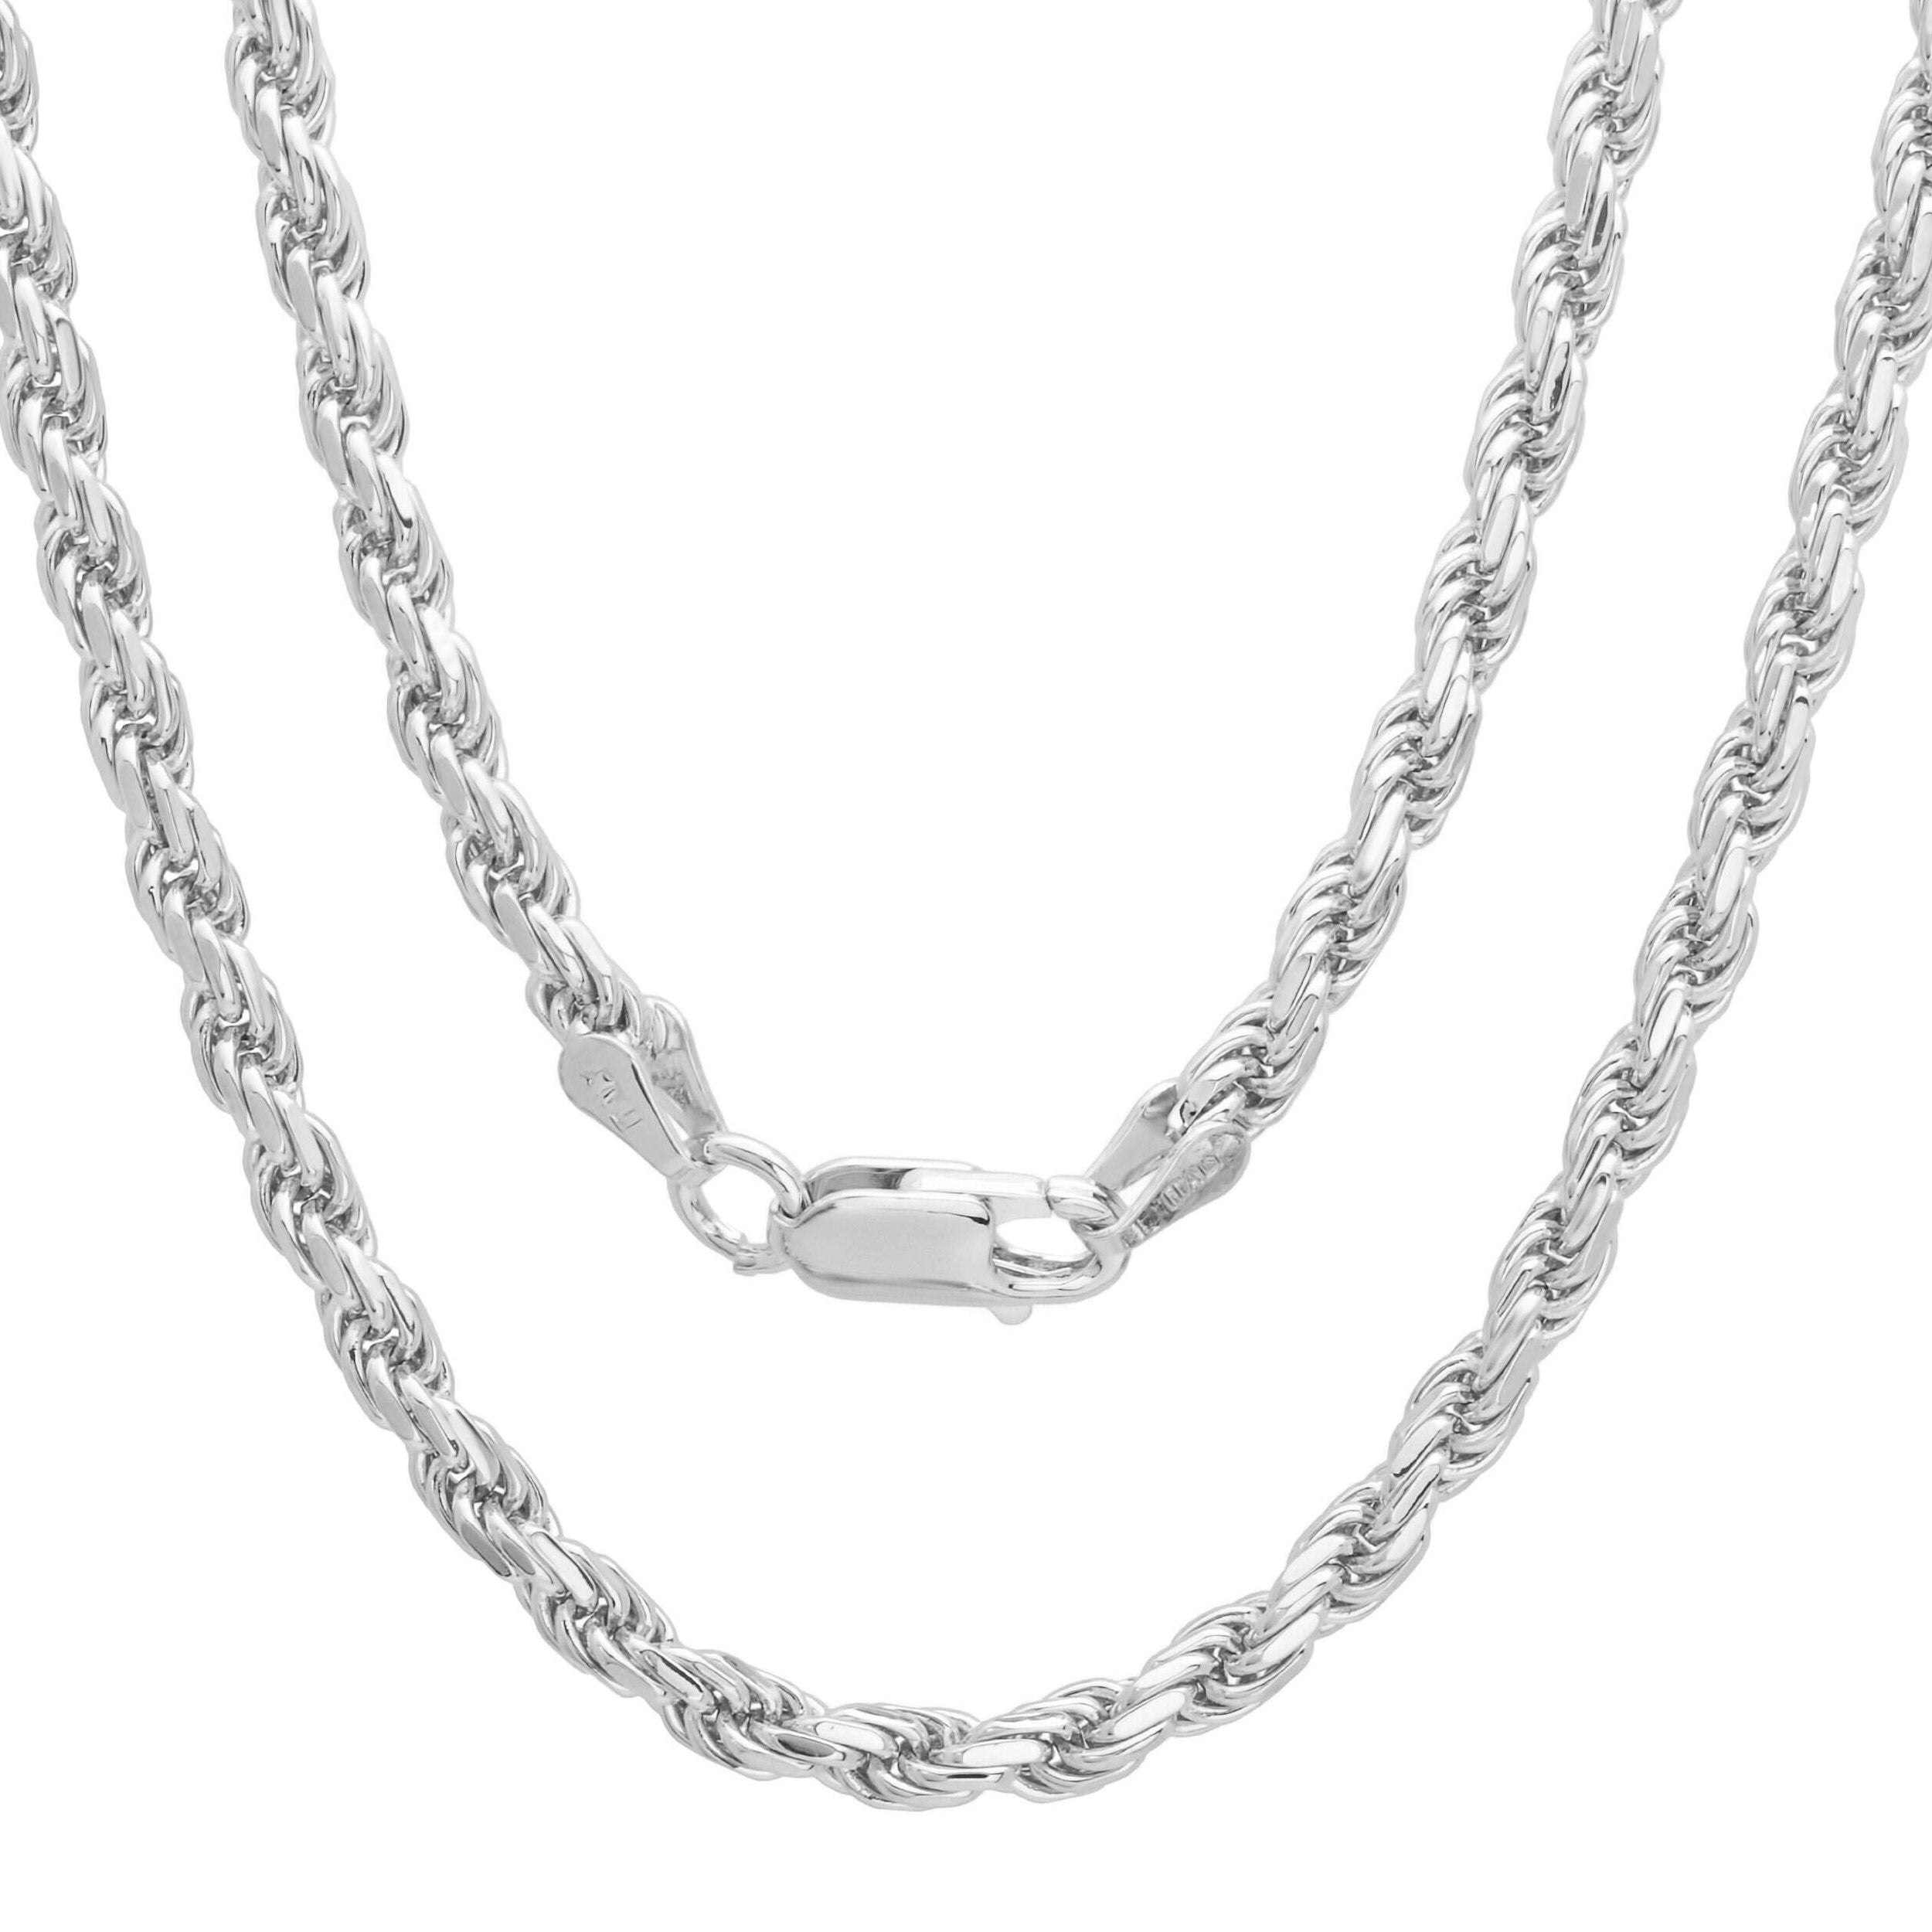 "4MM 080 Rhodium Plated Rope Chain .925 Sterling Silver Length ""8-28"" Inches"